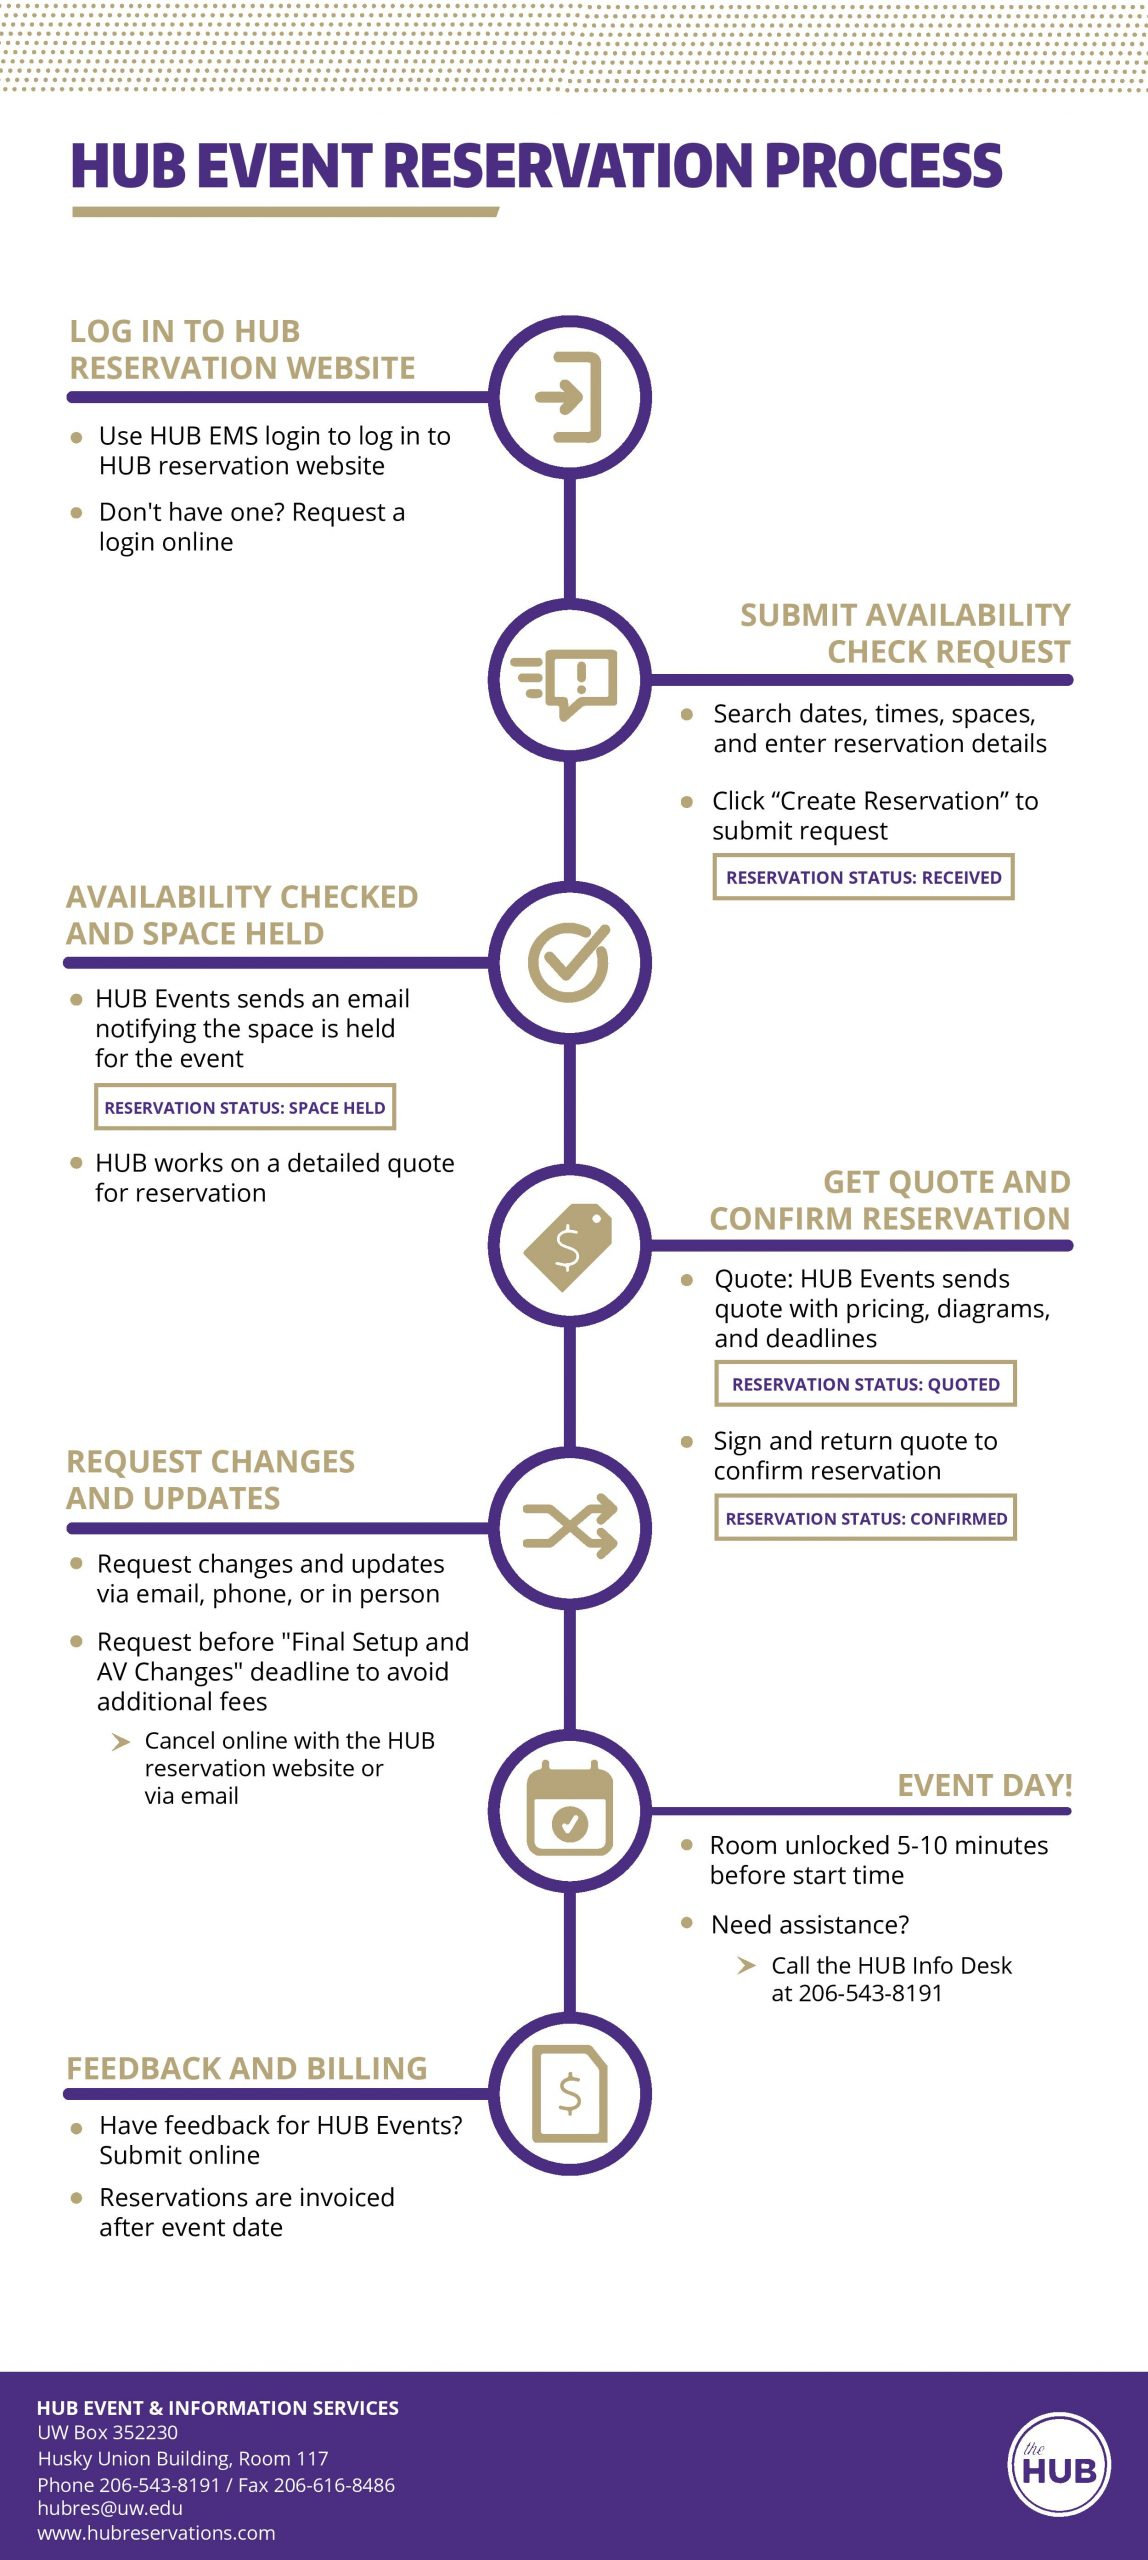 Click here for a pdf infographic of the HUB Reservation Process